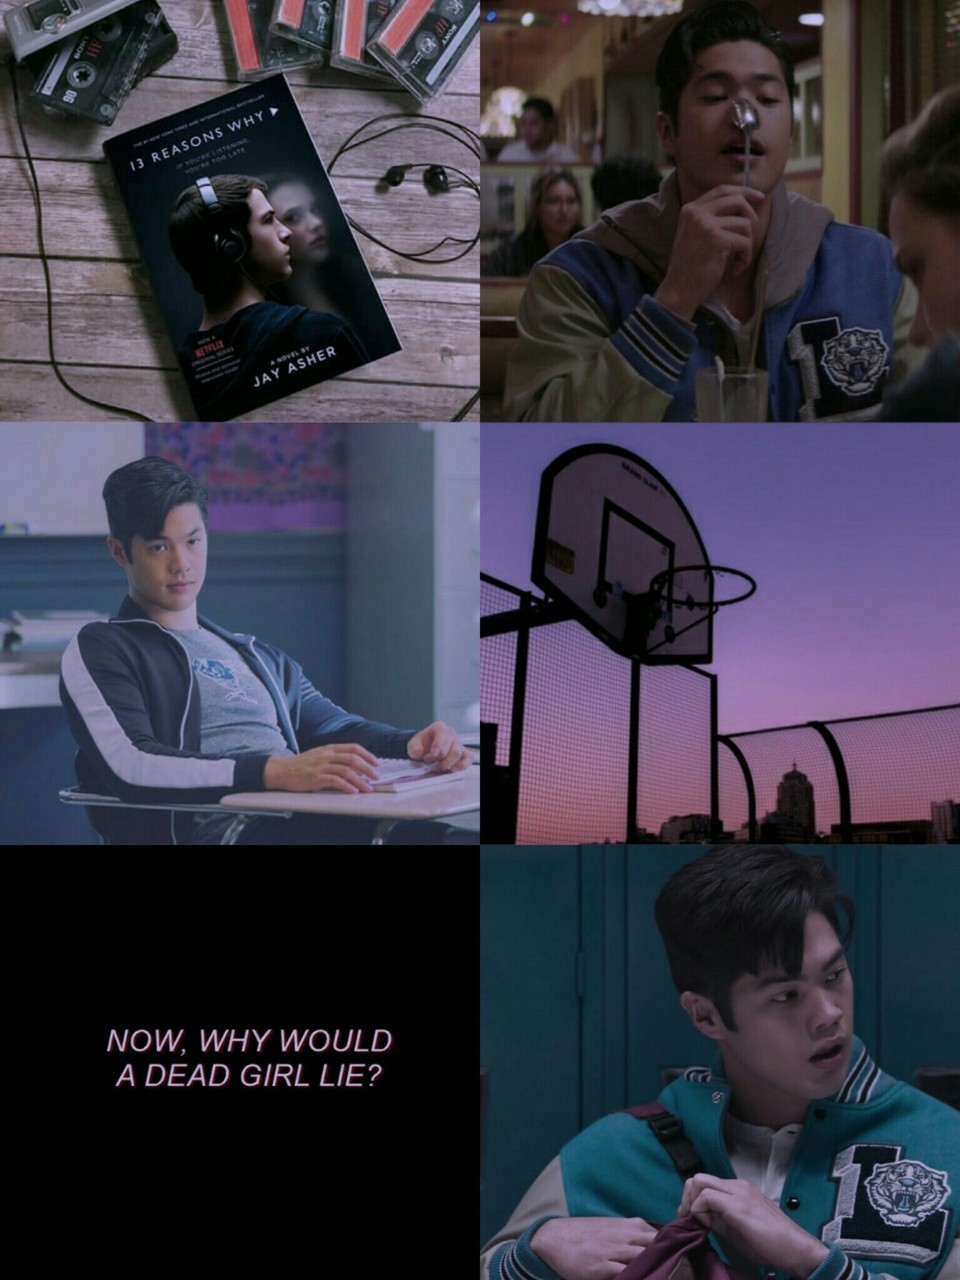 13 Reasons Why Libro Español 31 Images About 13 Reasons Why On We Heart It See More About